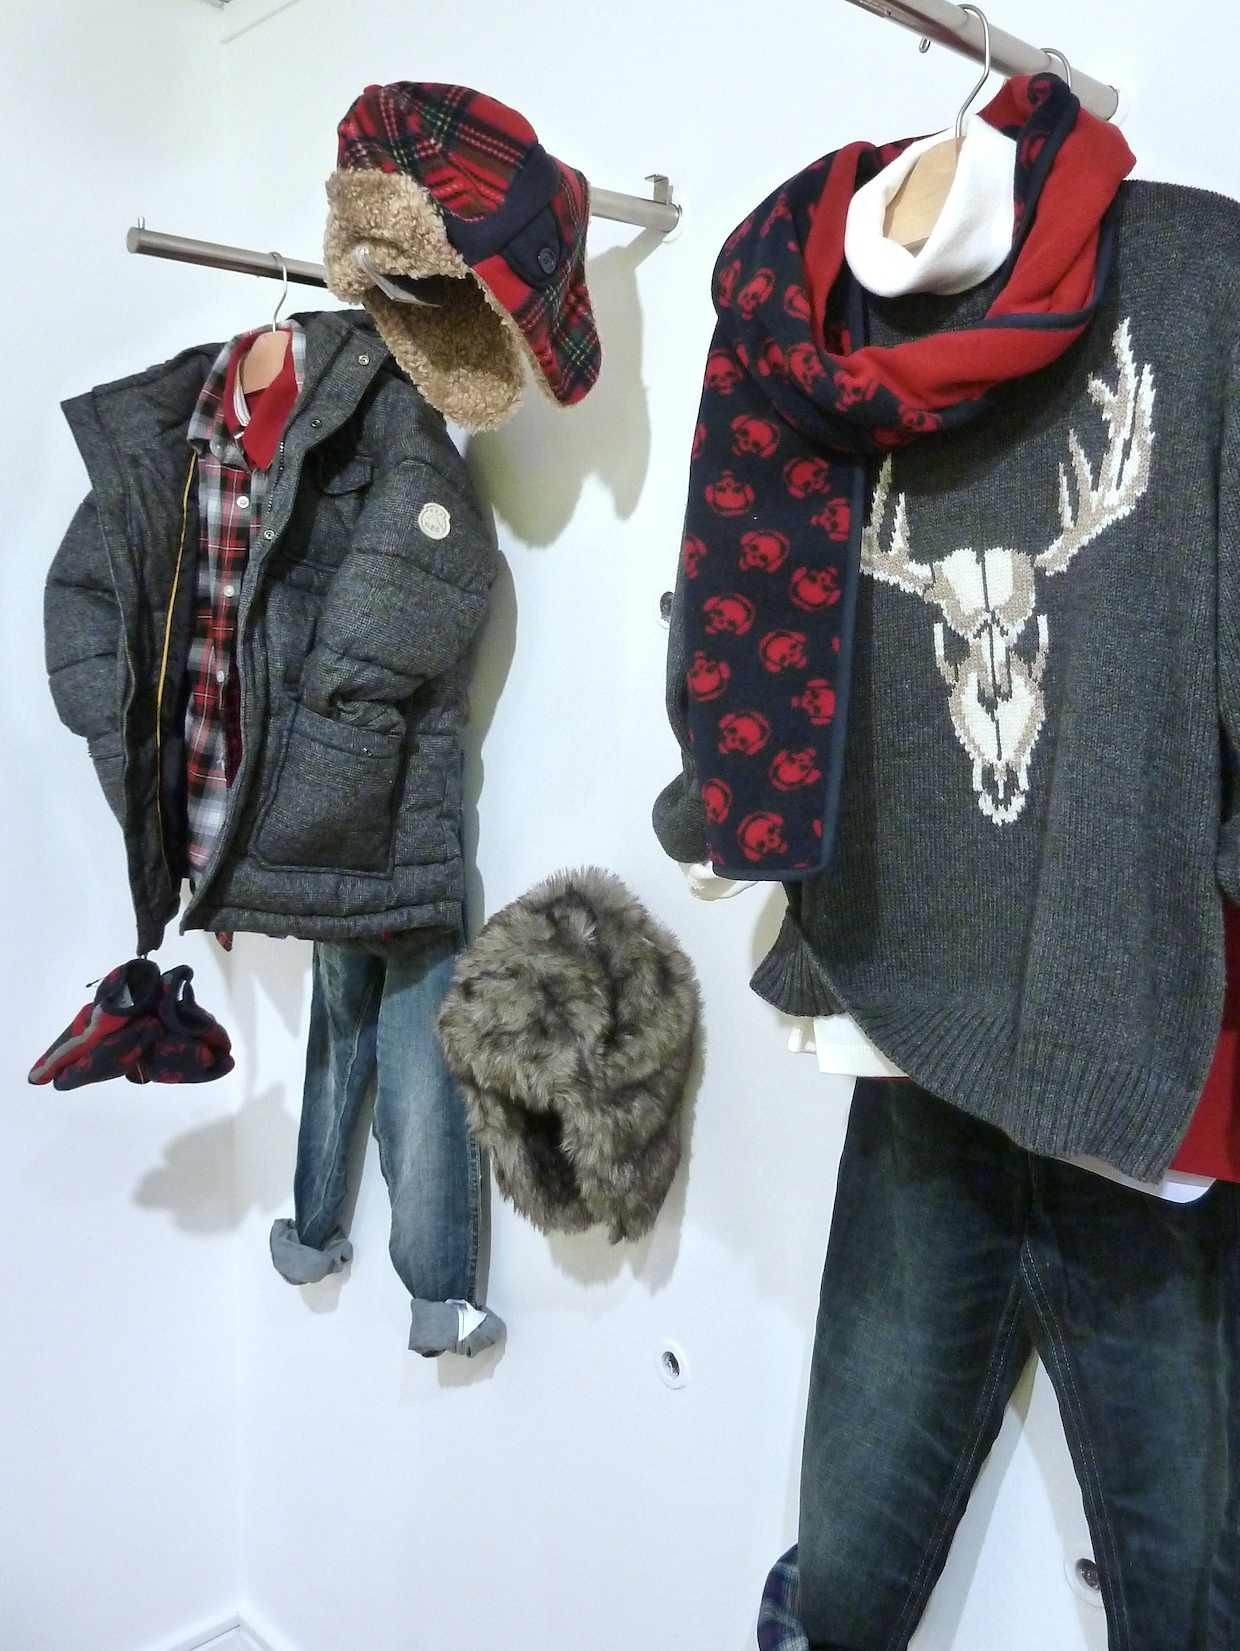 Great reindeer intarsia knit and tweedy padded coat at GapKids for Xmas 2012